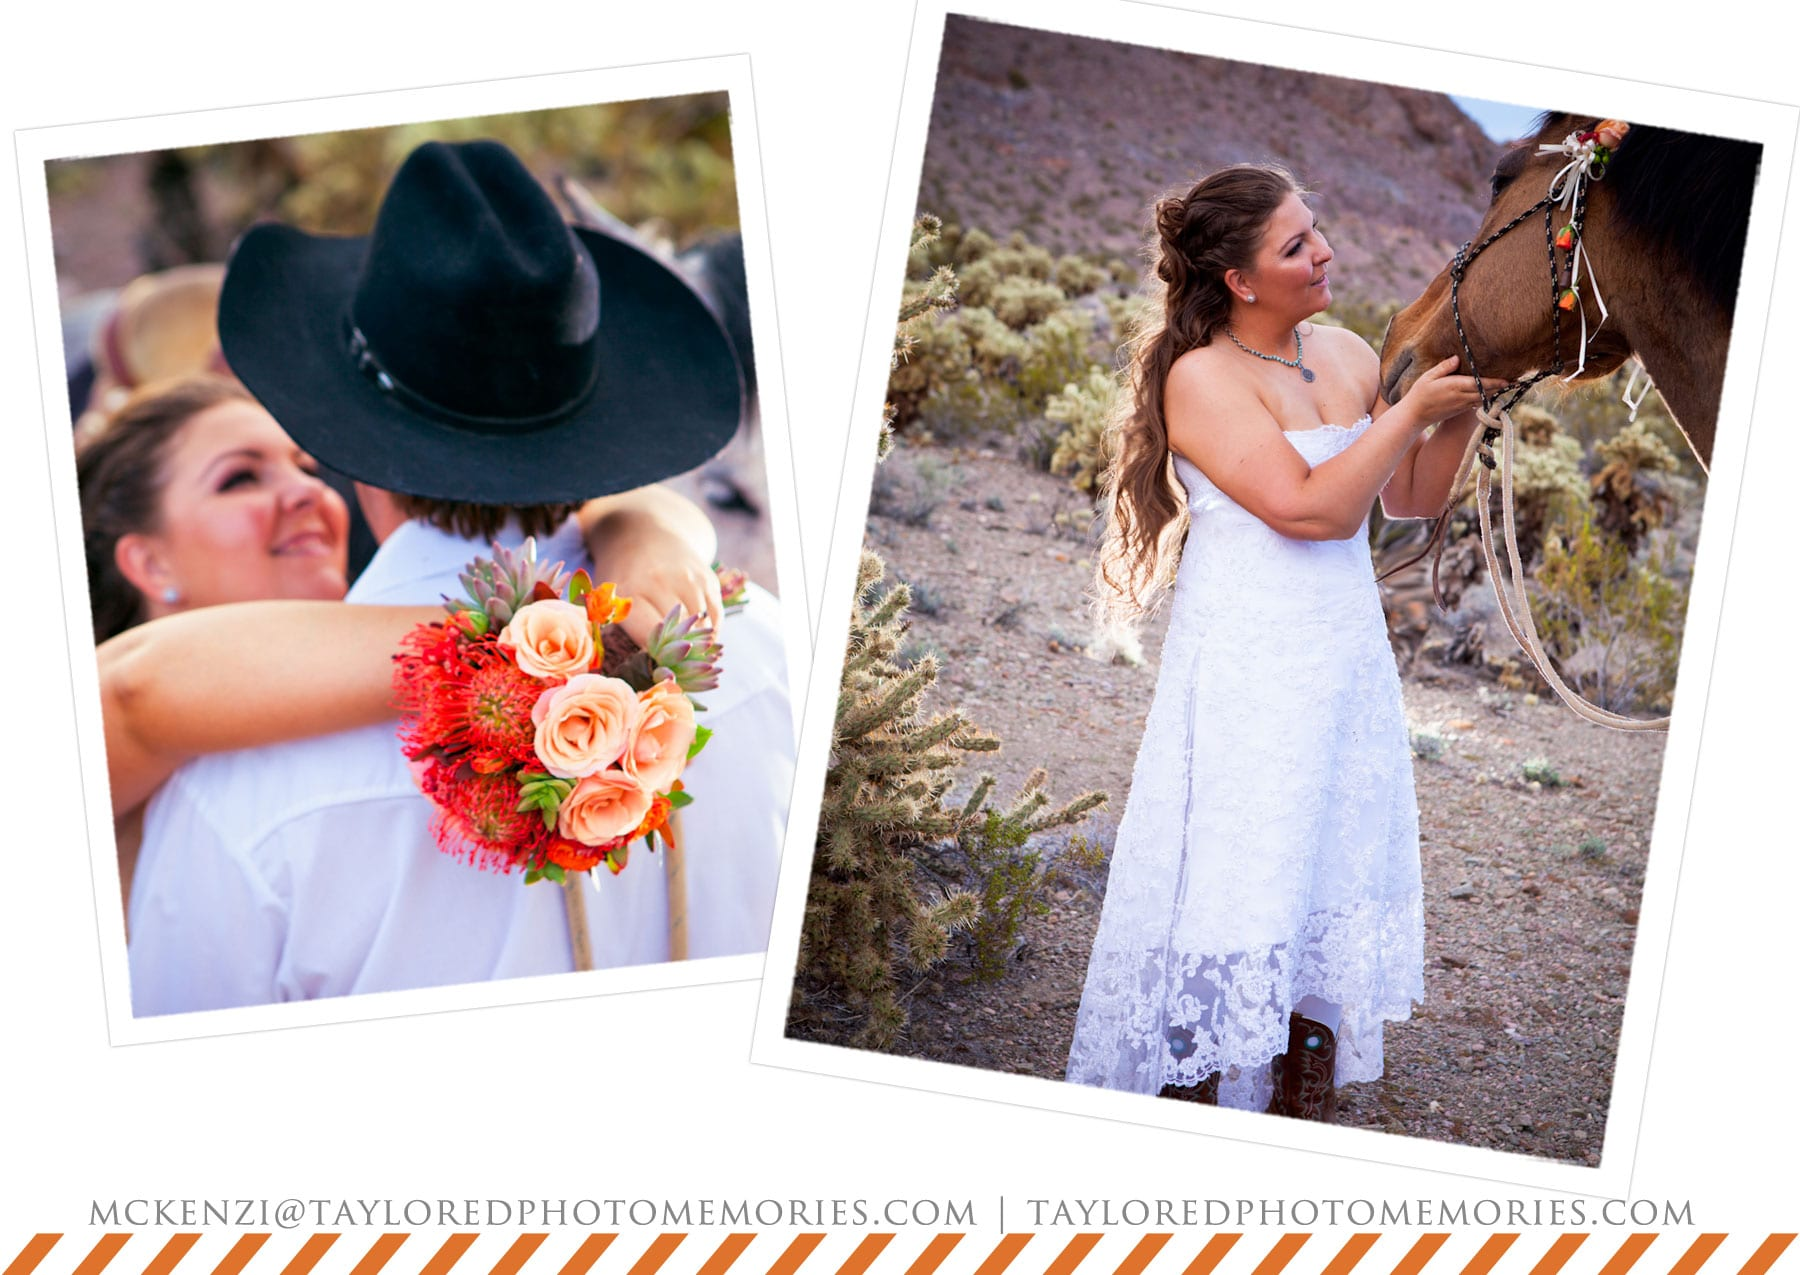 Simple Ceremony | Adventure Wedding Photography | Horse Wedding | Taylored Photo Memories